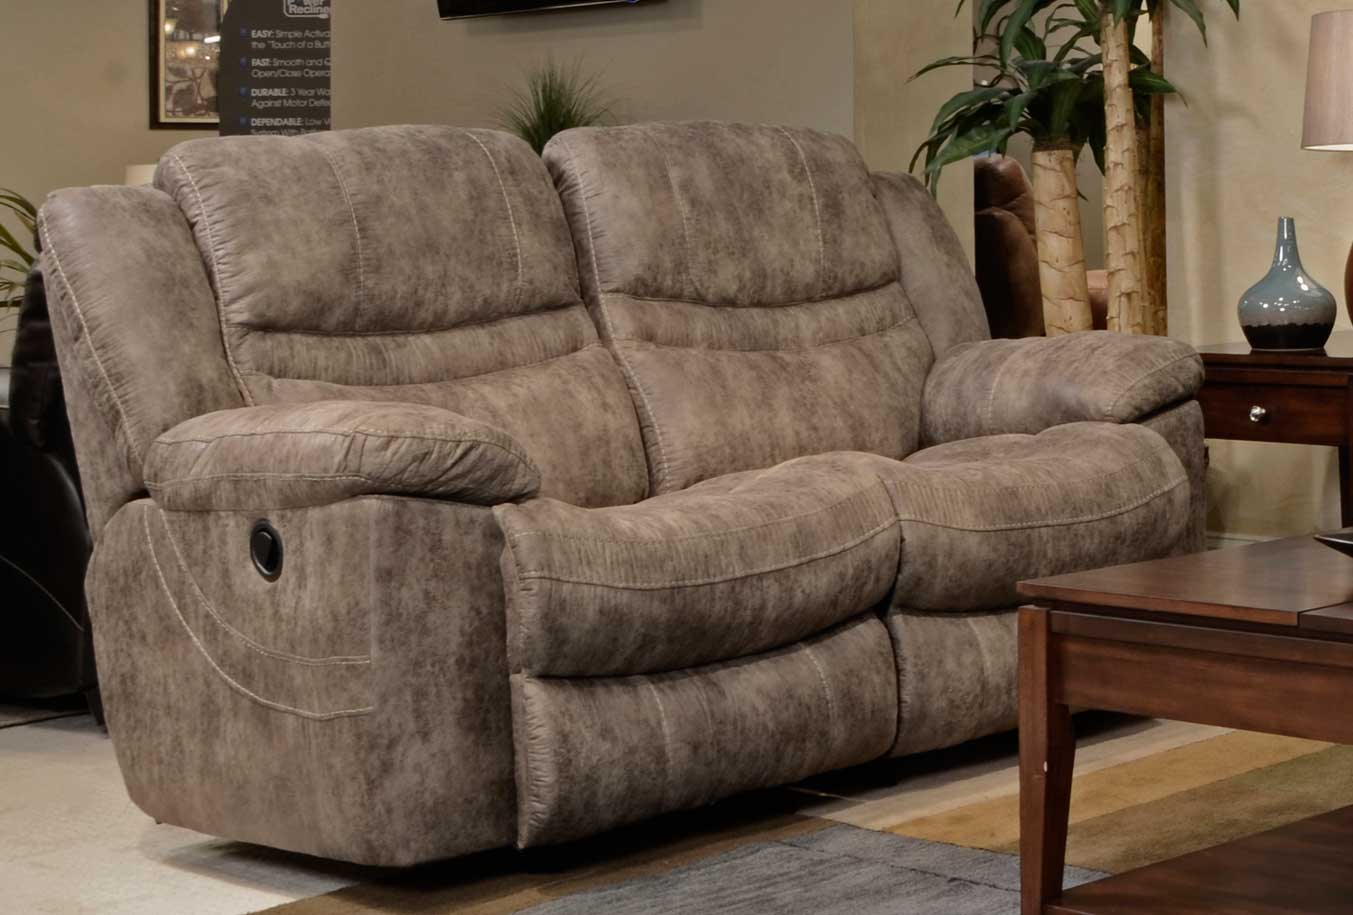 Catnapper Valiant Rocking Reclining Loveseat Marble Cn 14022 Marble At